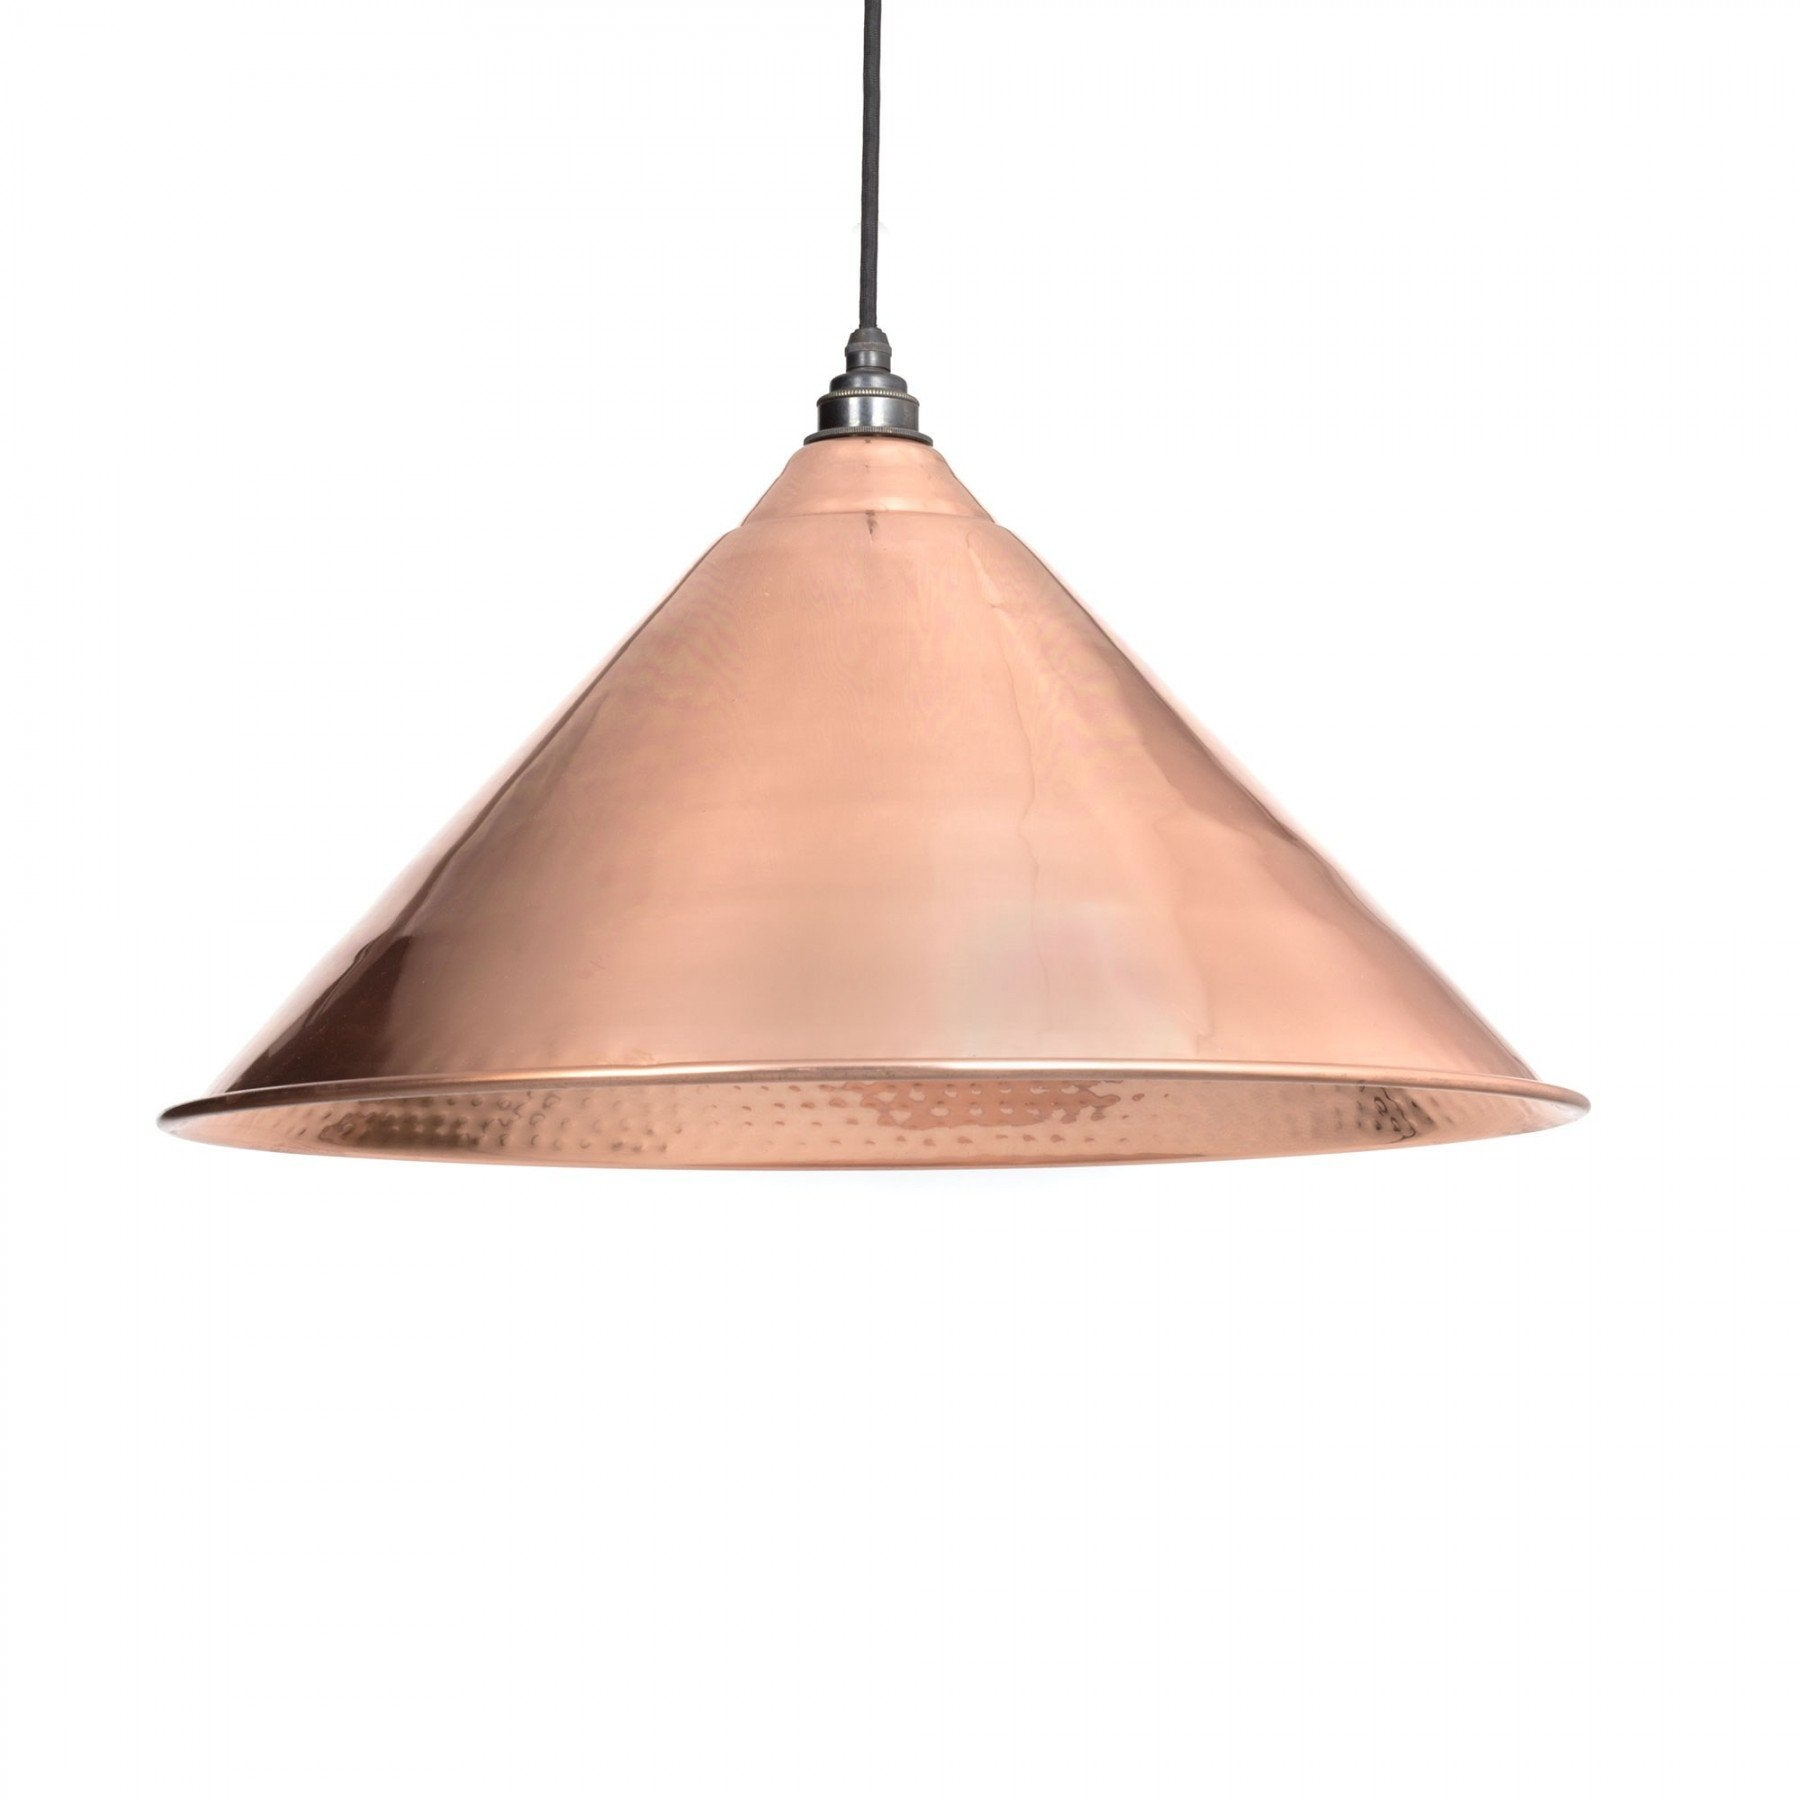 Hammered Copper Interior Hockley Pendant